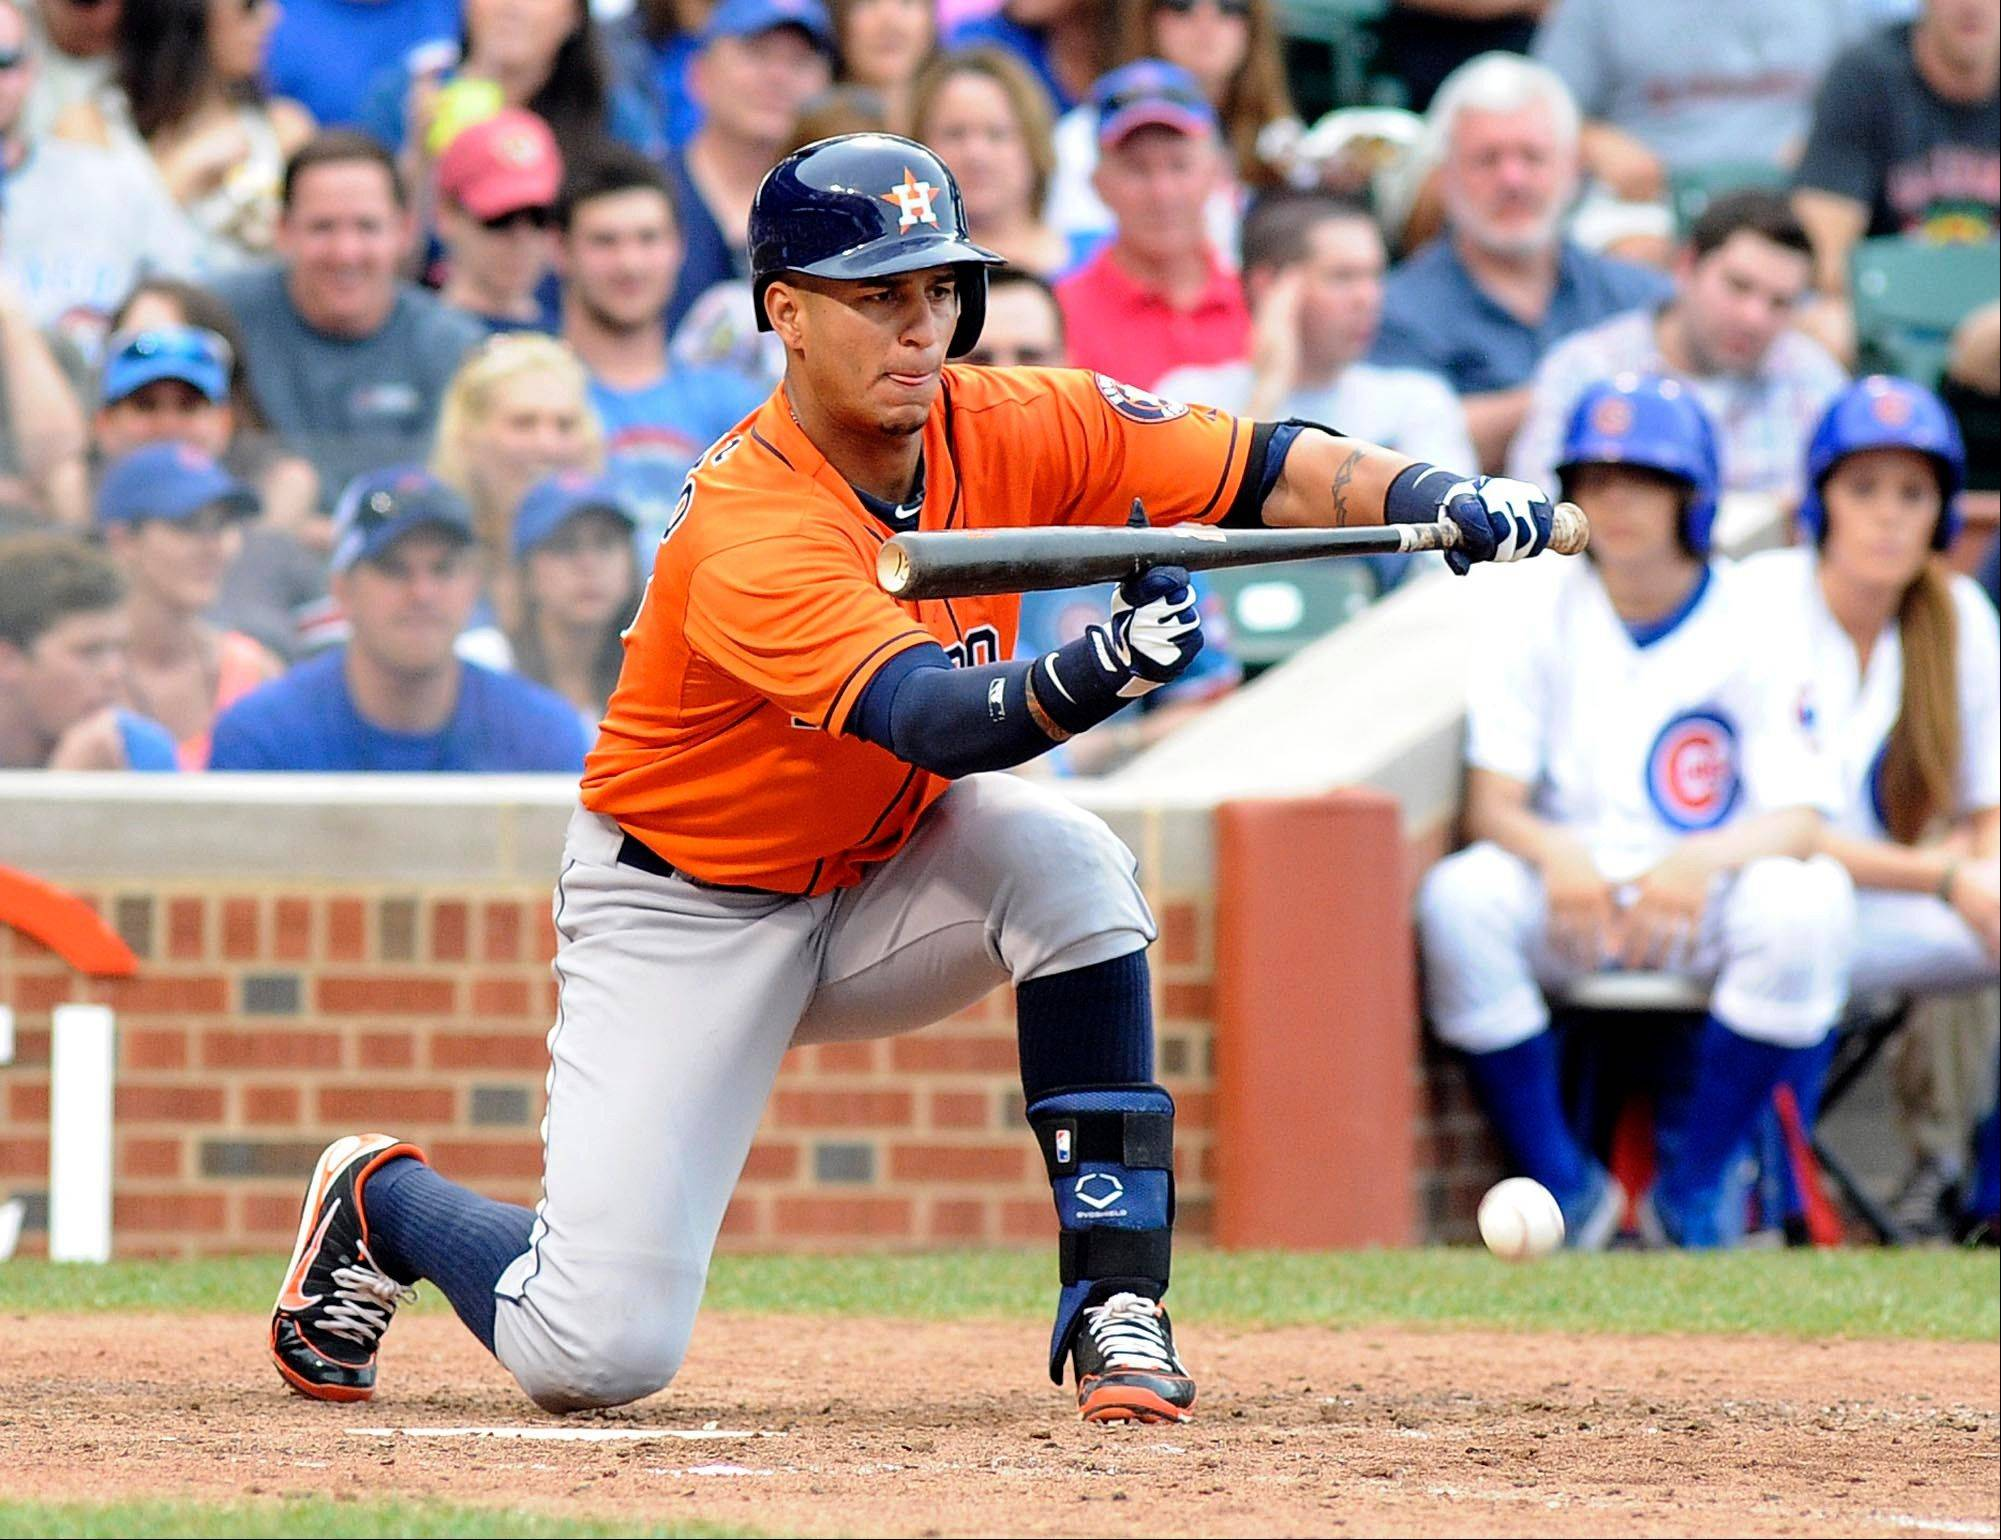 Houston Astros' Ronny Cedeno puts down a bunt, scoring the winning run, in the ninth inning of a baseball game against the Chicago Cubs, Saturday June 22, 2013, in Chicago, Ill. The Astros won 4-3. (AP photo/Joe Raymond)